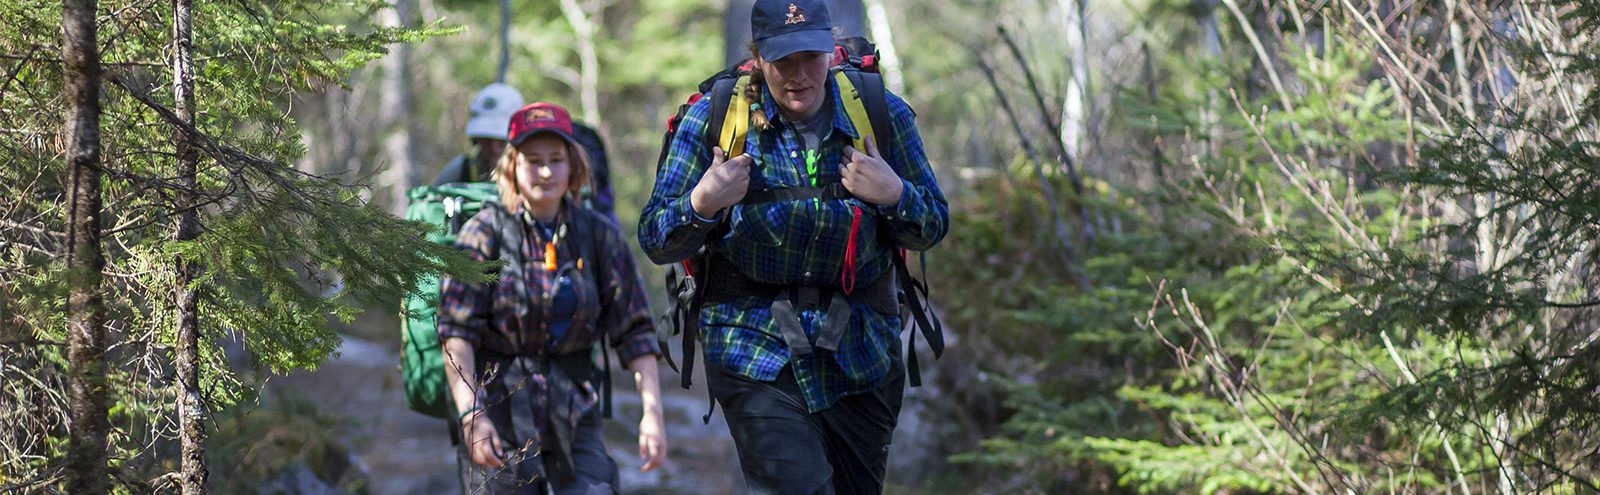 Students backpacking on a trail.